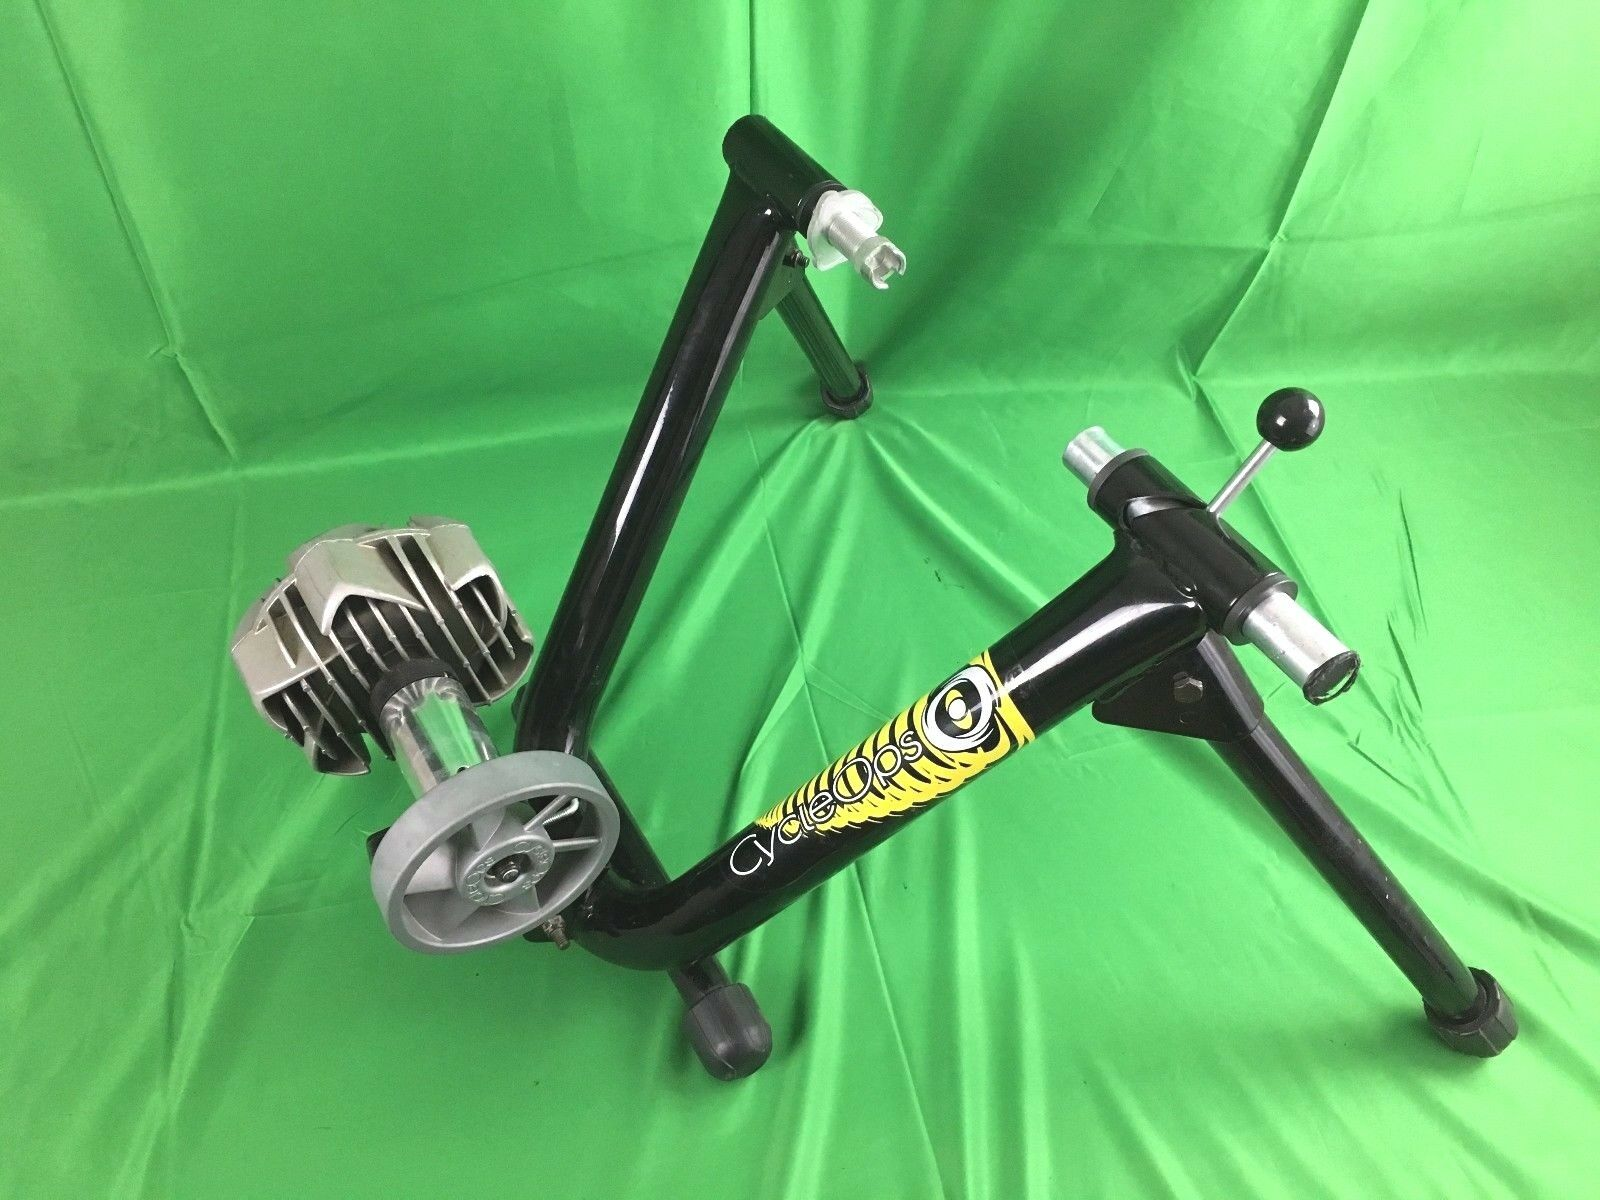 CycleOps Bike Trainer (Indoors) Cycle Ops (CB)